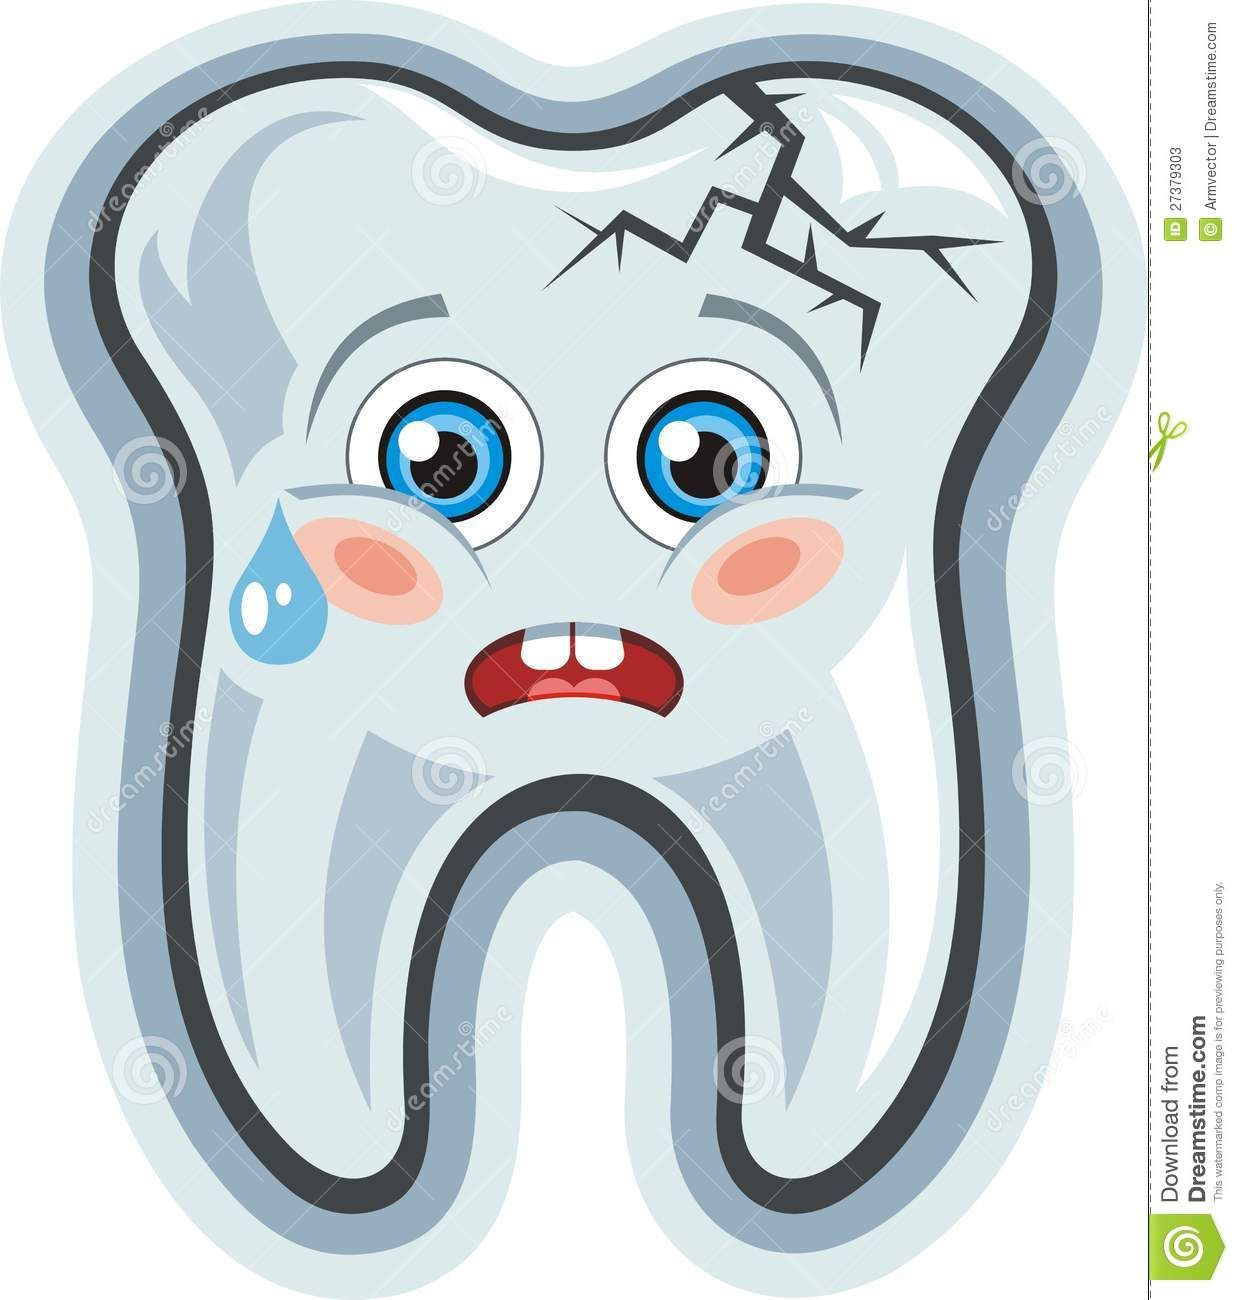 Tooth caricature clipart picture library download Happy Tooth Clip Art | Vector. Cartoon cute crying tooth.Toothache ... picture library download